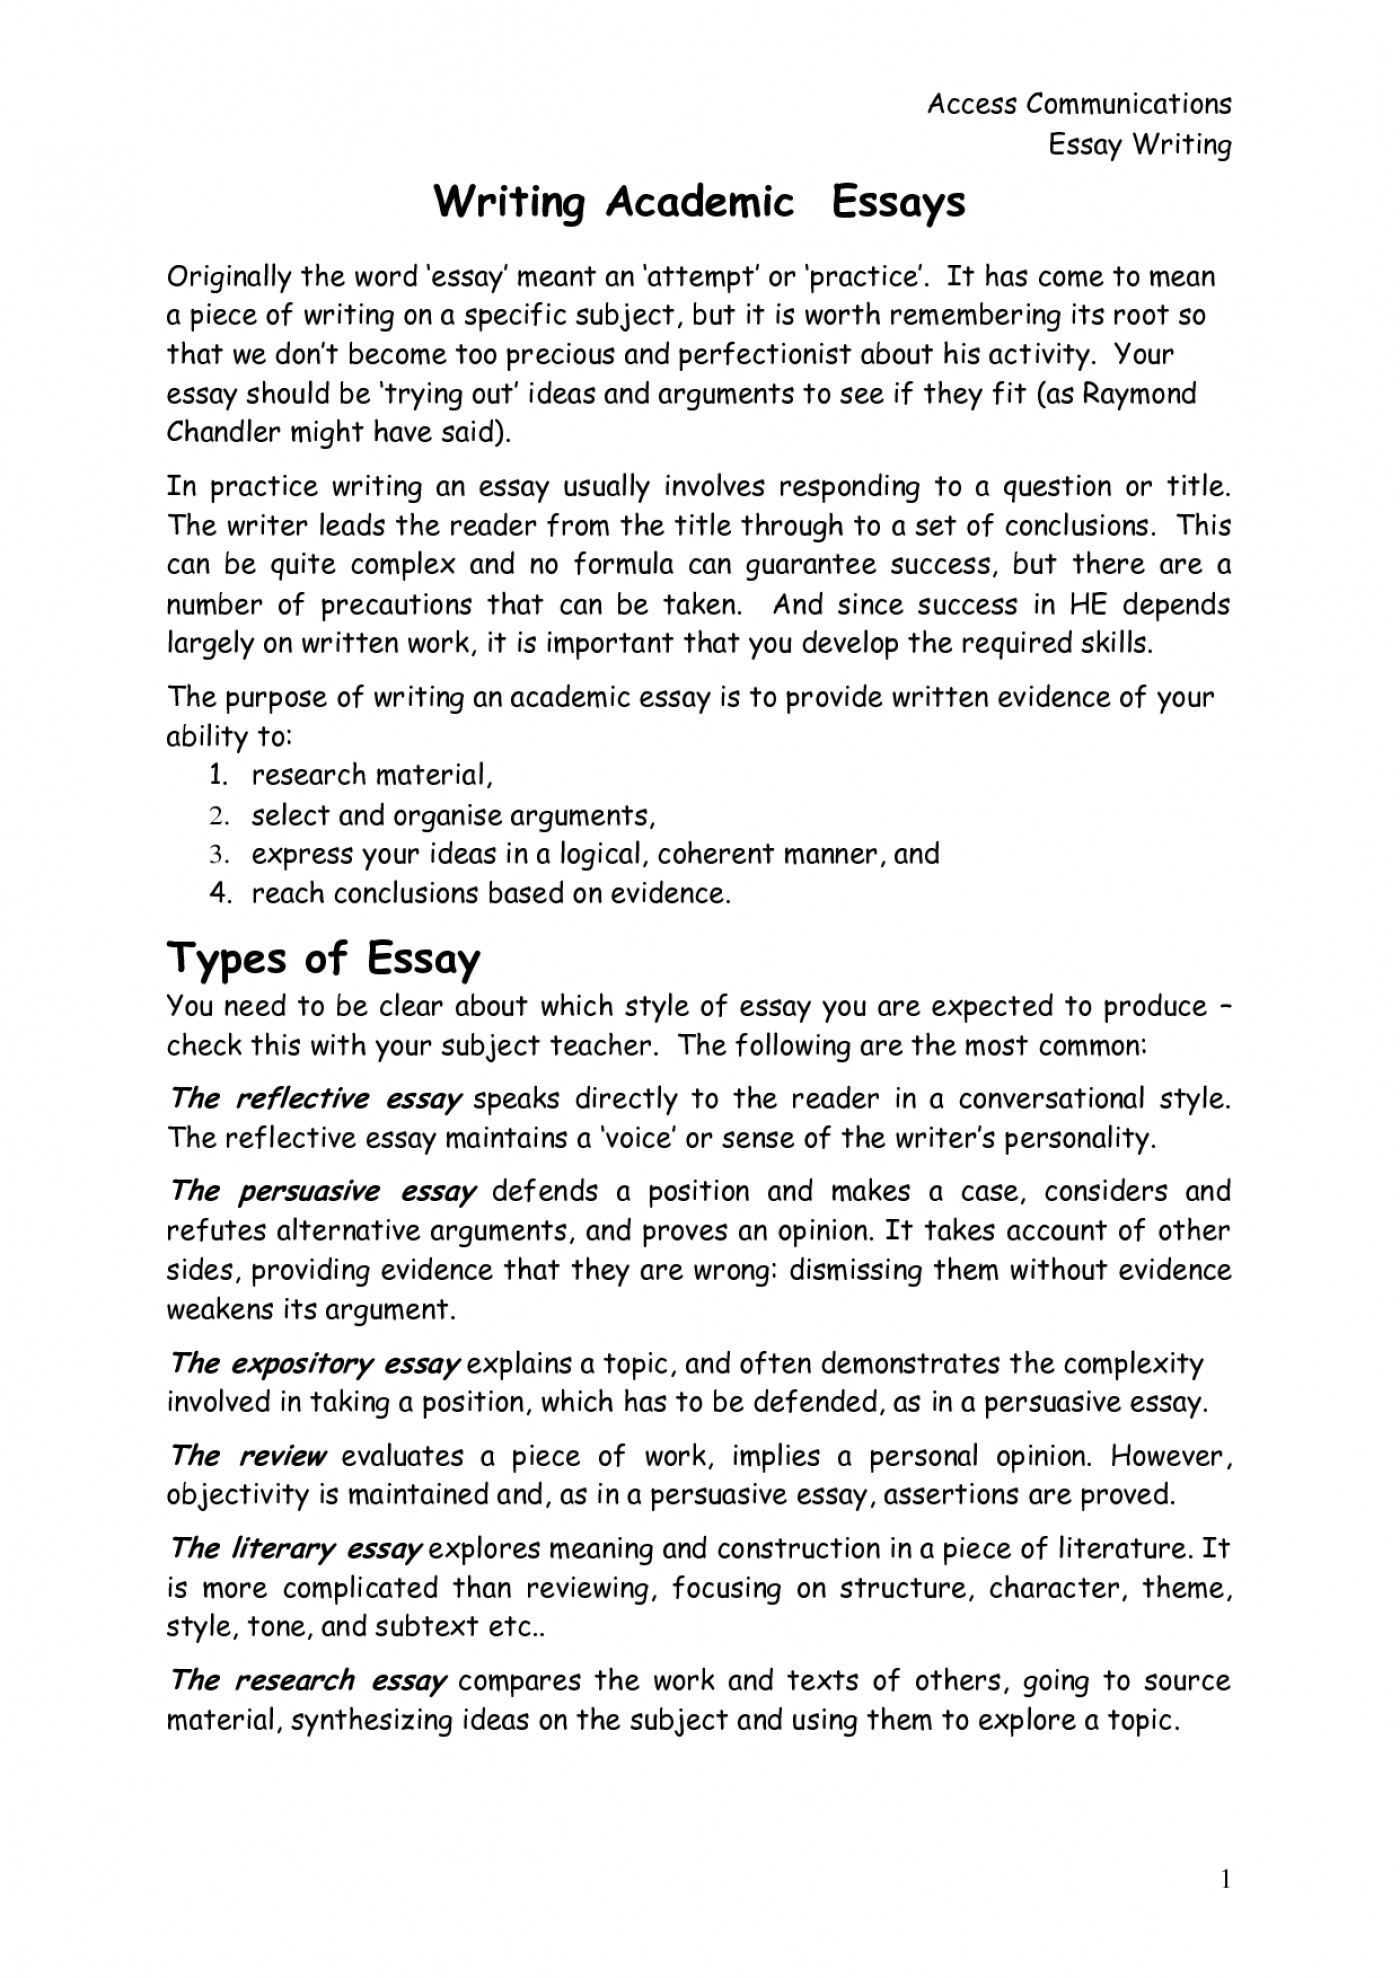 019 Write My Essay For Me Example Surprising App Free Uk 1400